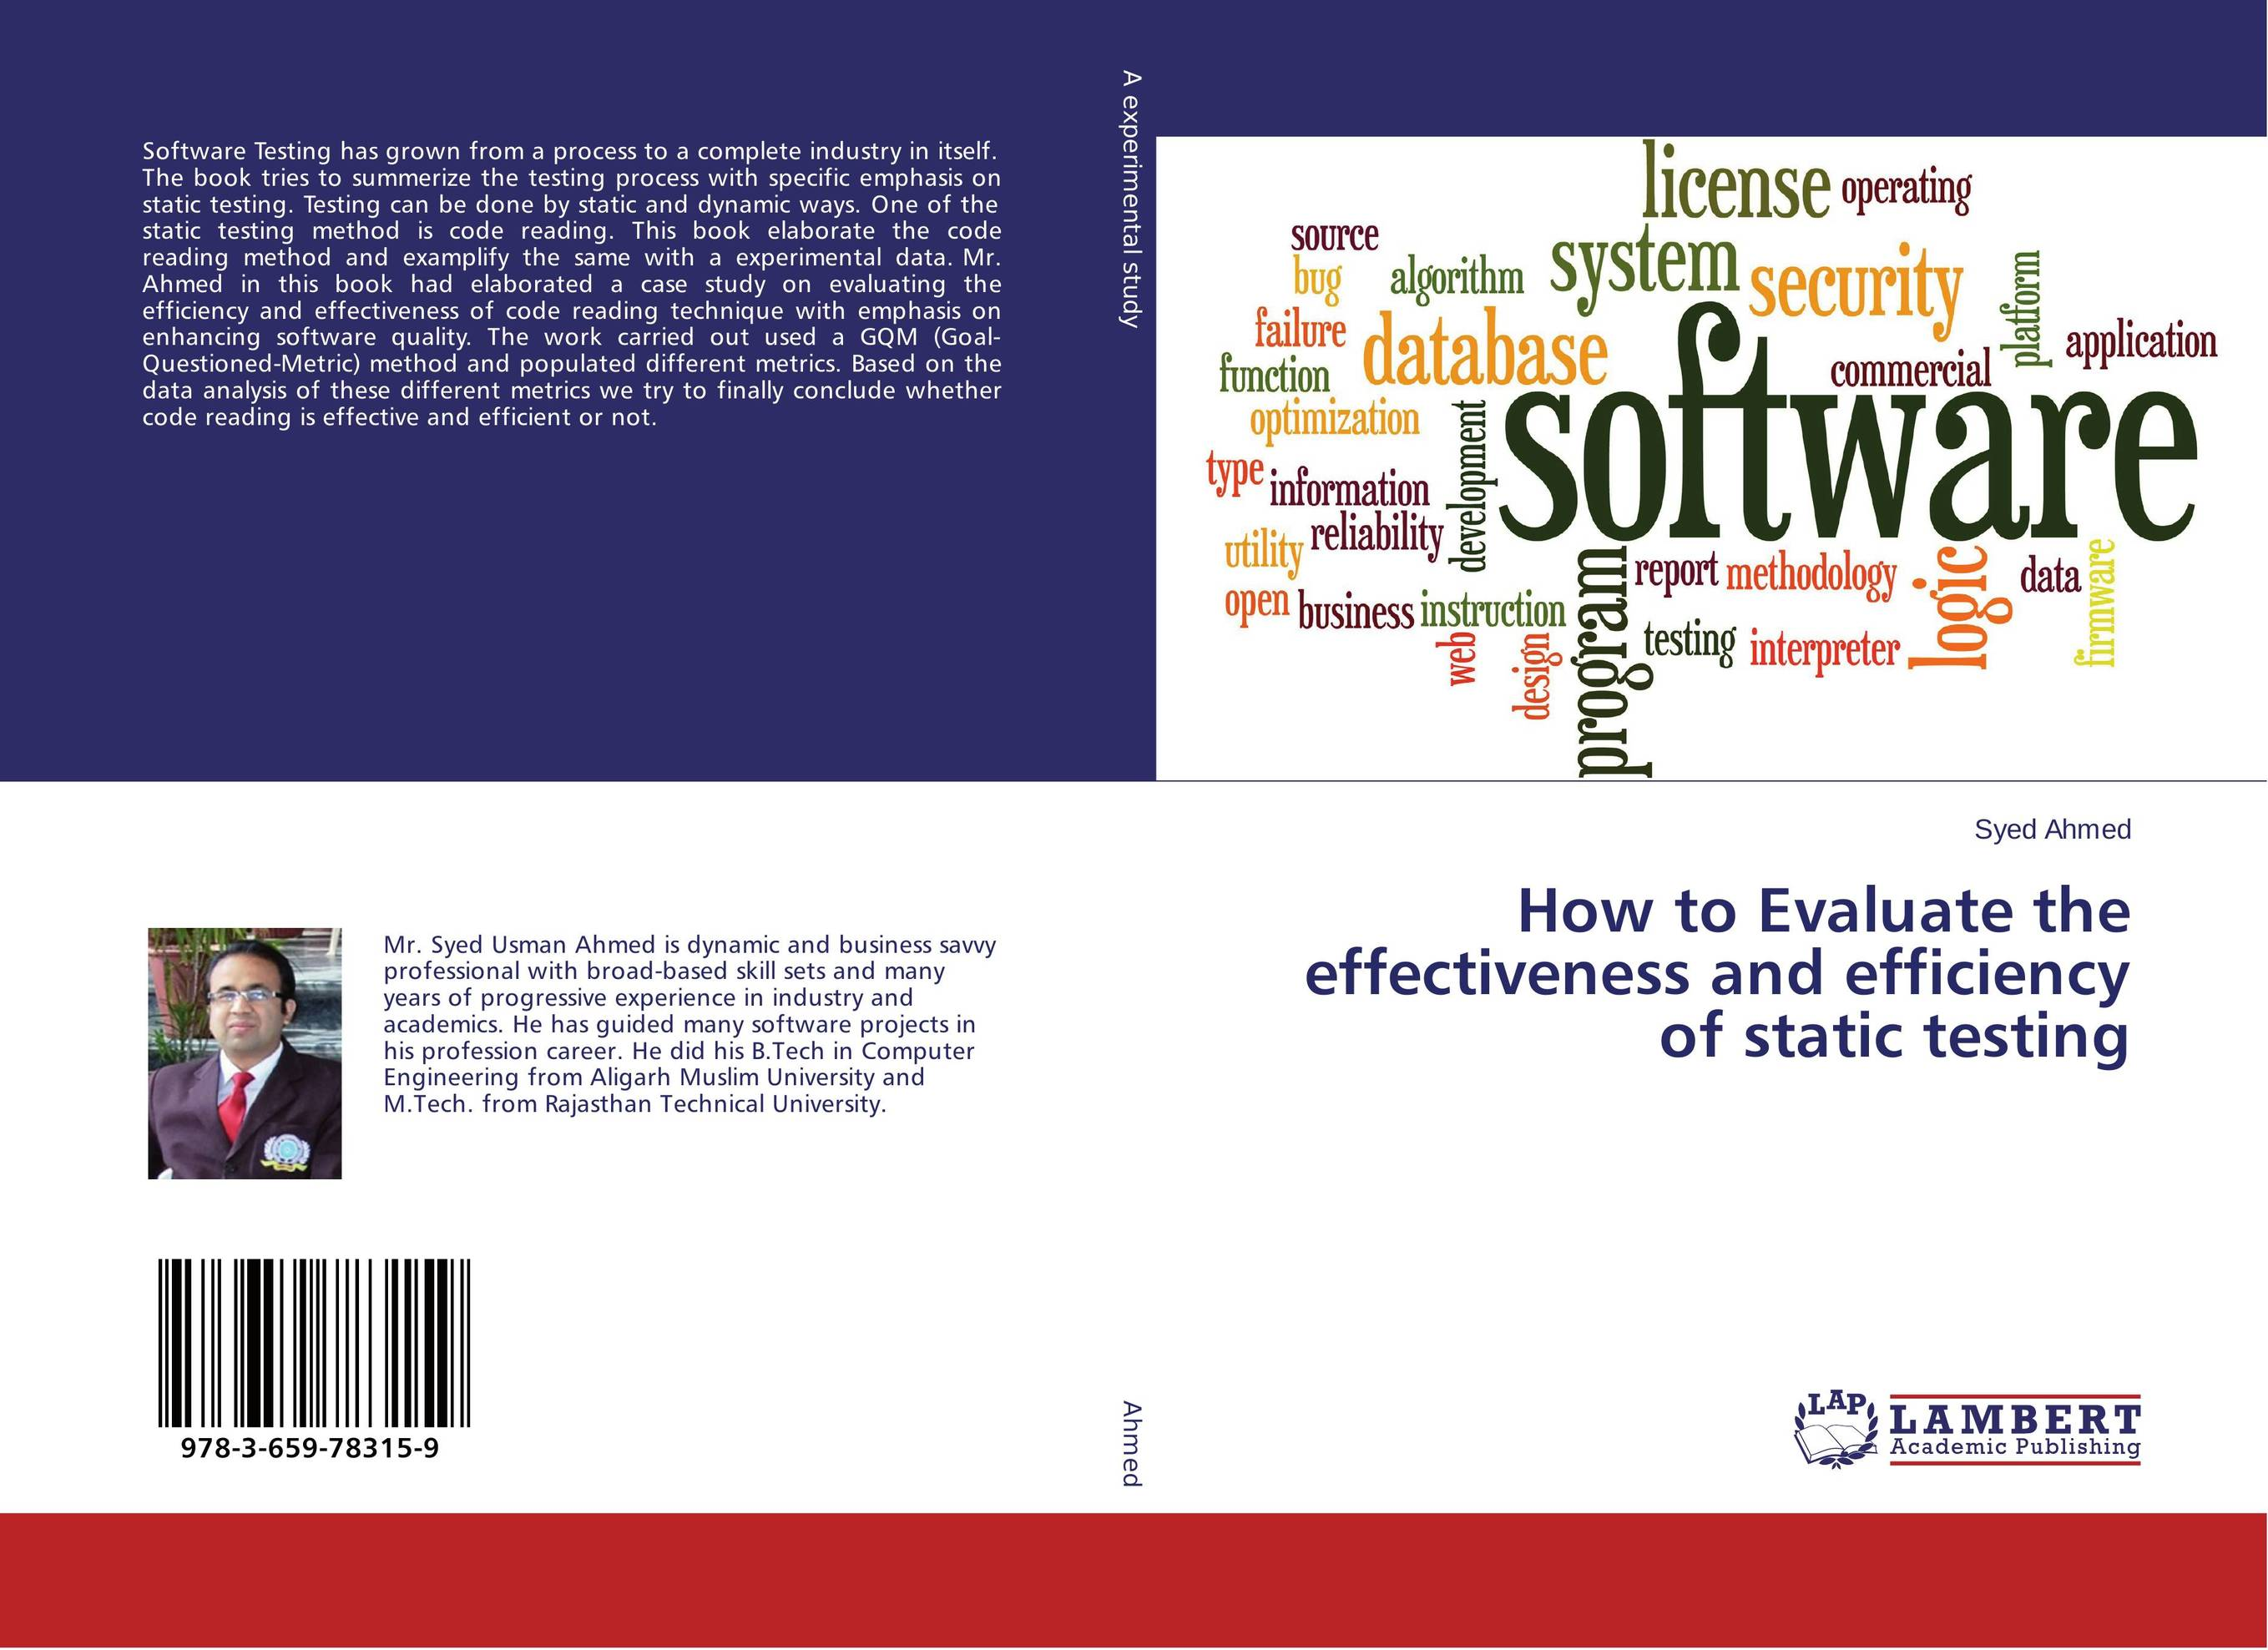 How to Evaluate the effectiveness and efficiency of static testing